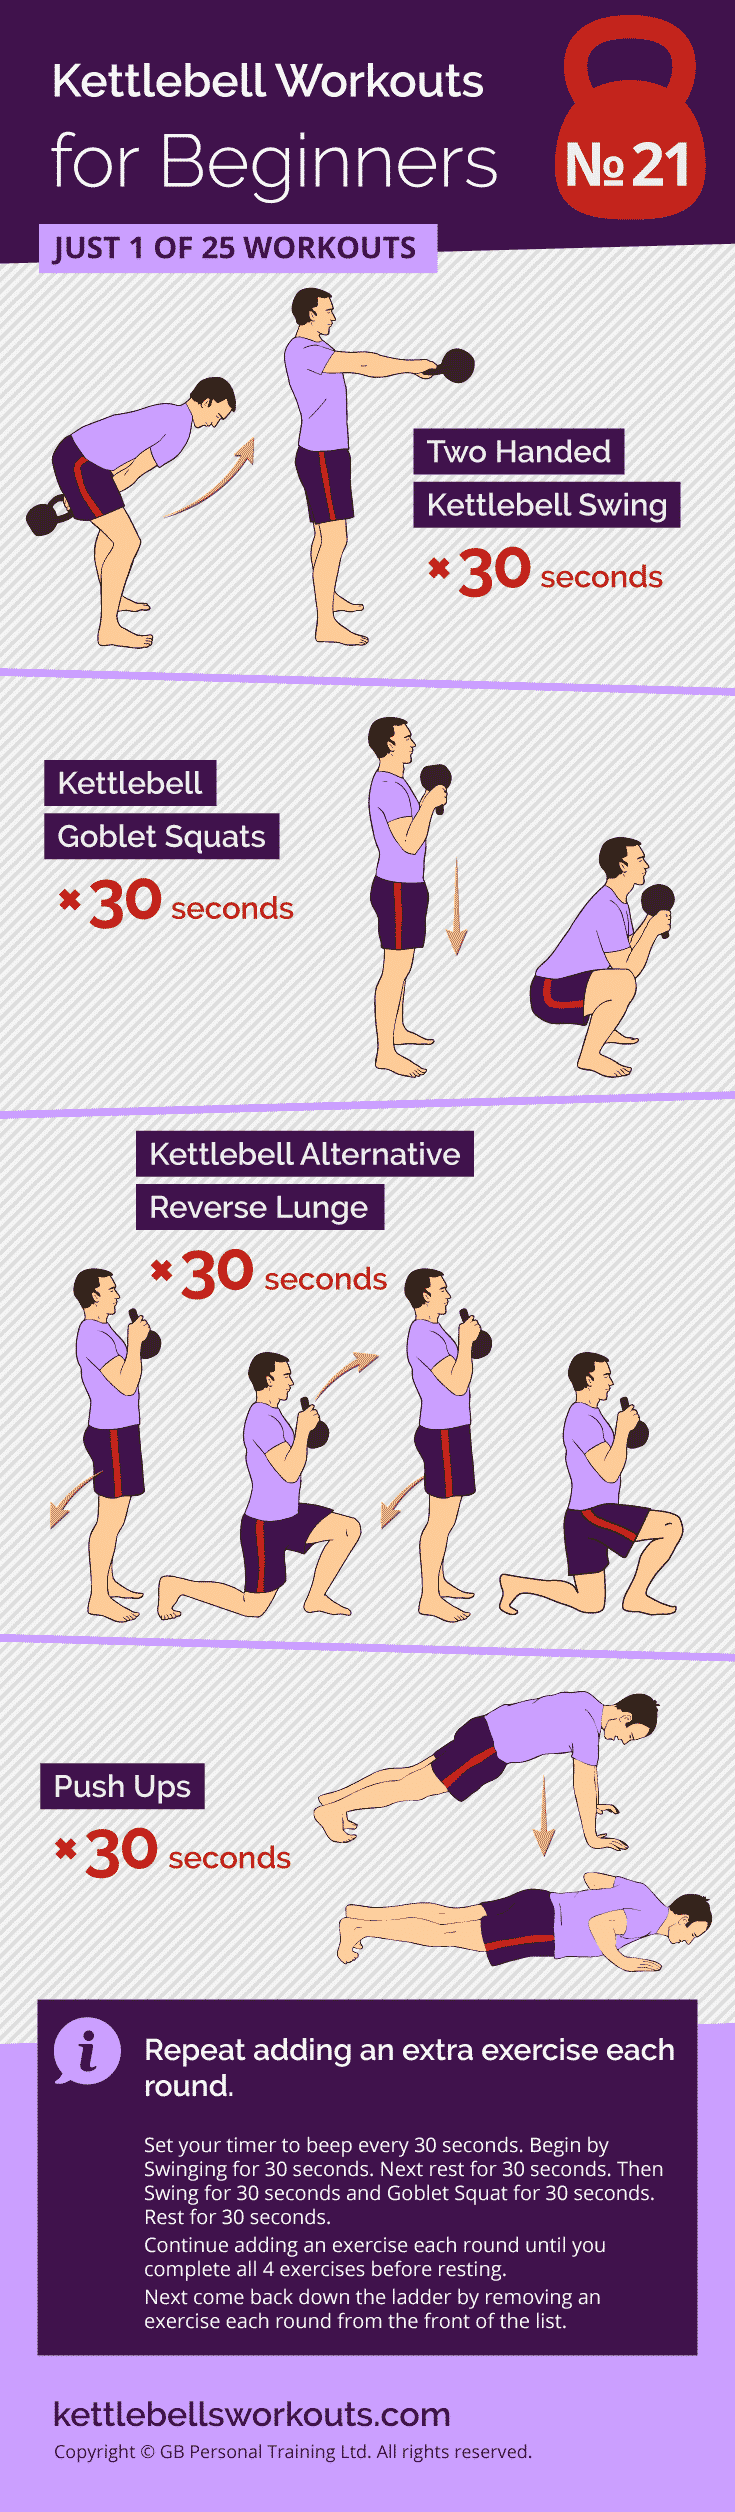 Kettlebell Movement Ladder Workout